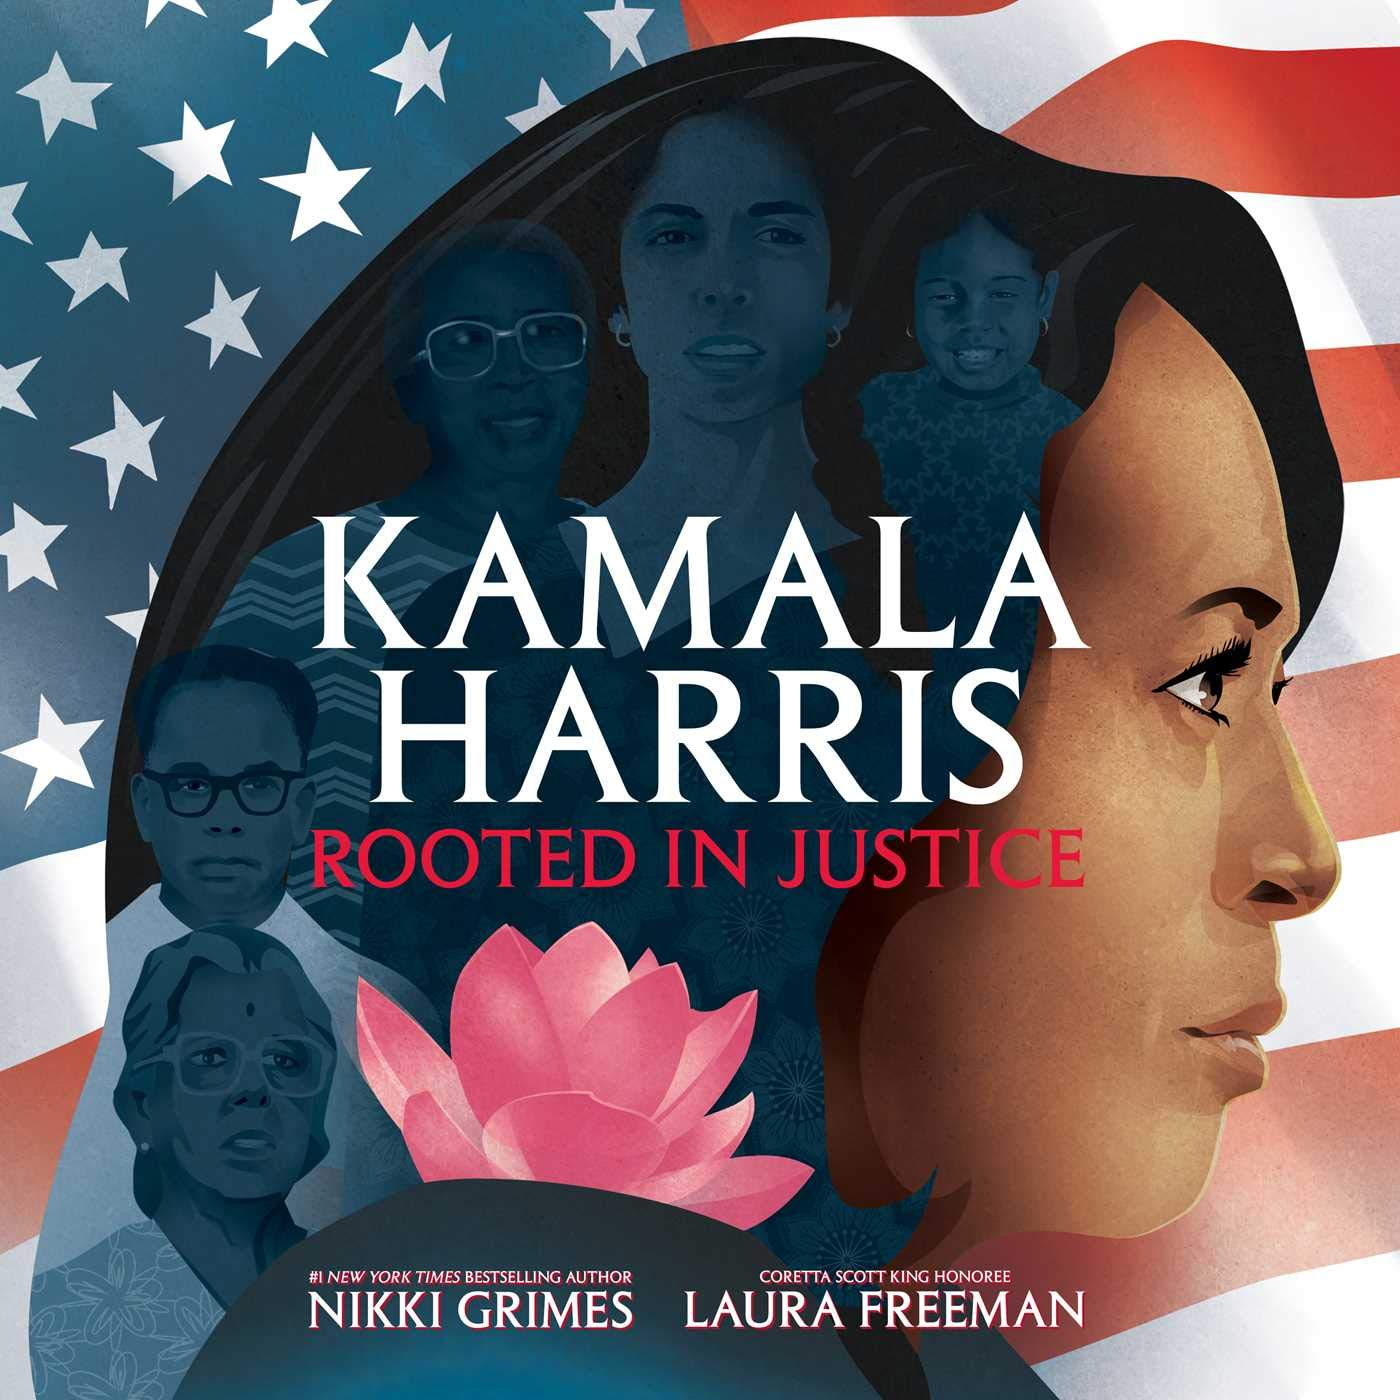 celebrate-picture-books-picture-book-review-kamala-harris-rooted-in-justice-cover